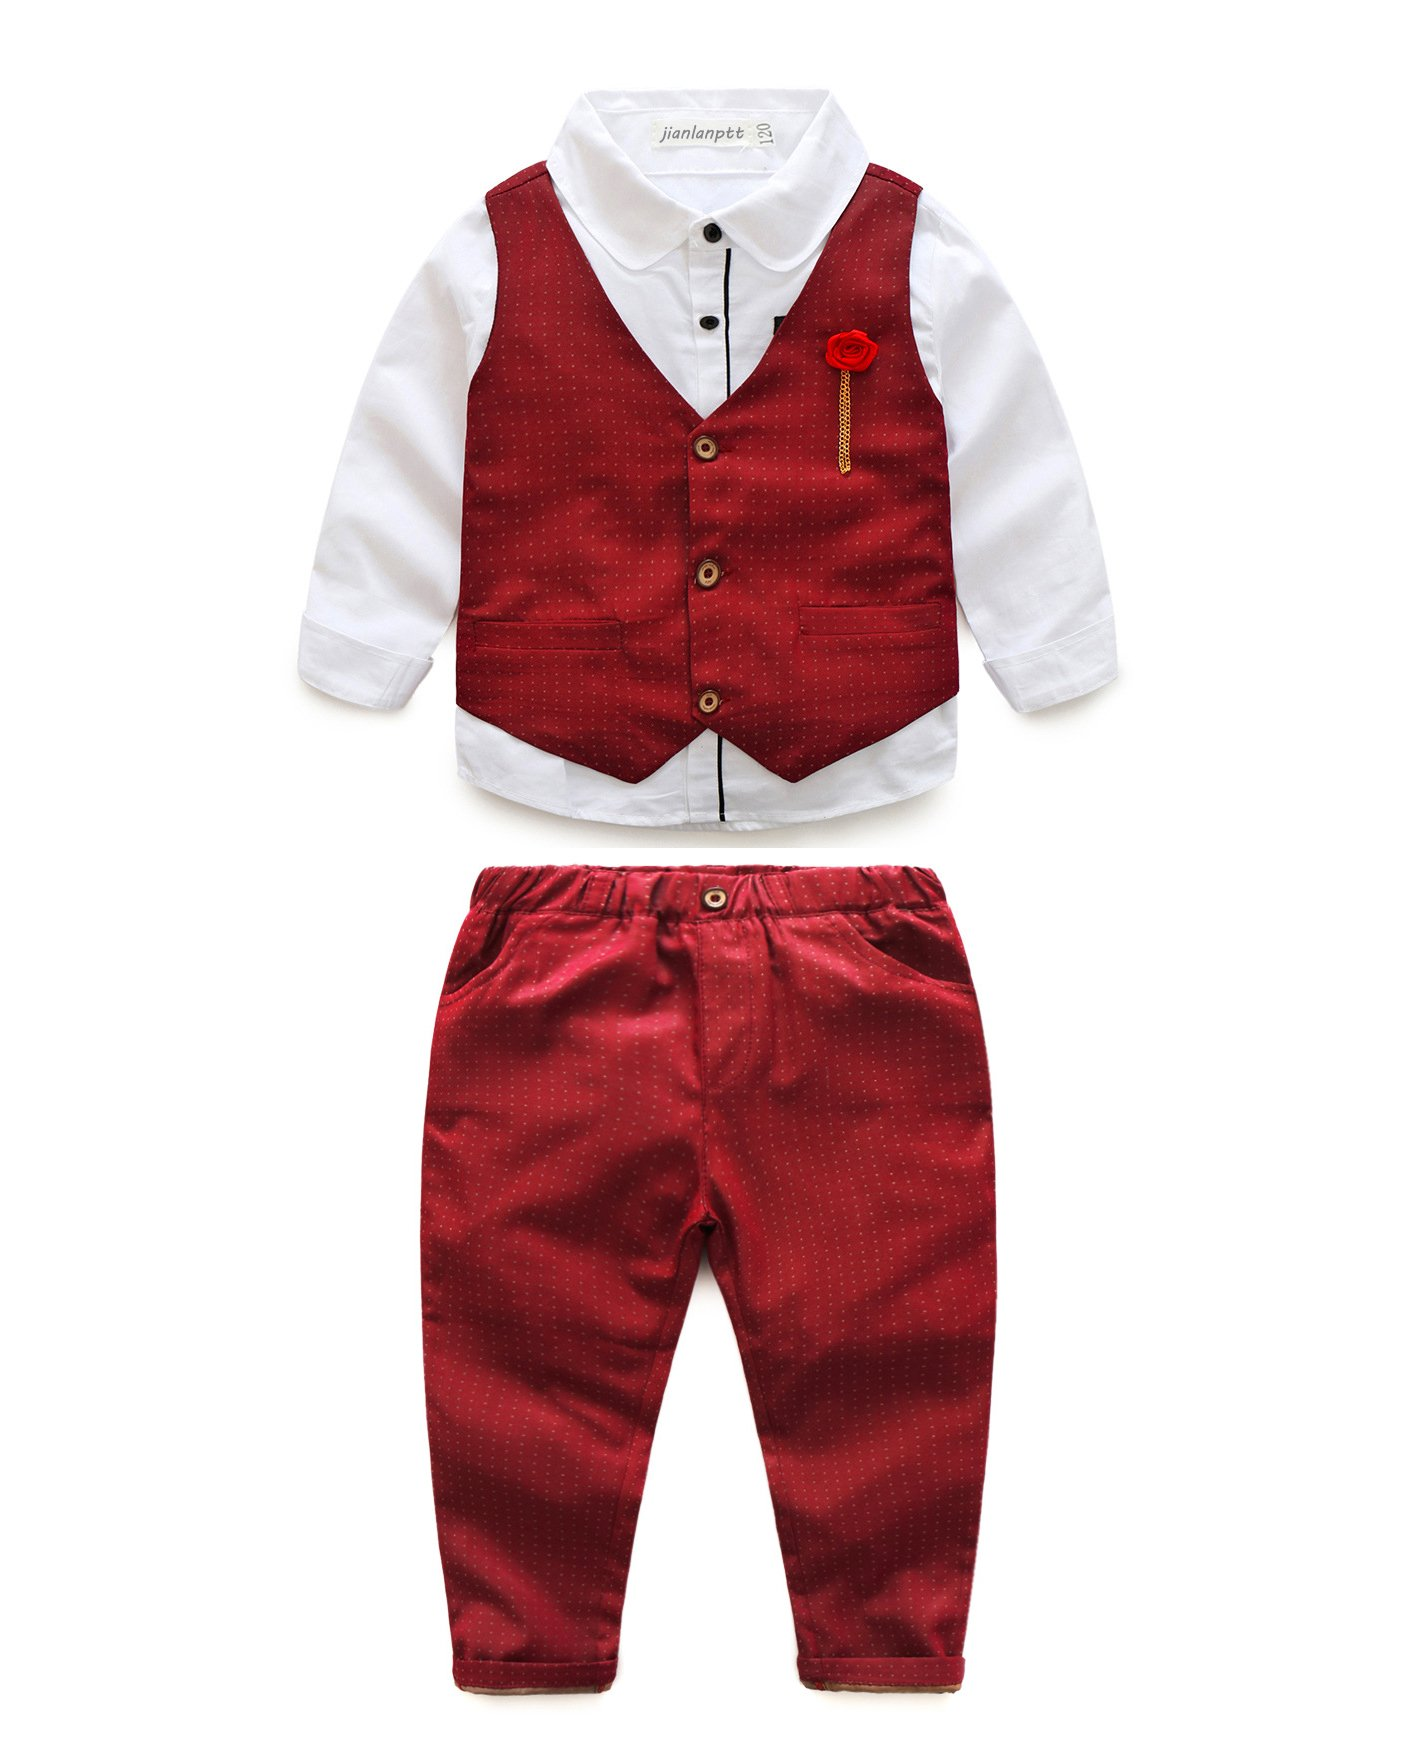 JIANLANPTT Baby Boy Wedding Party Formal Clothing Set Shirt Waistcoat Pants Suit Outfits Red 110 by JIANLANPTT